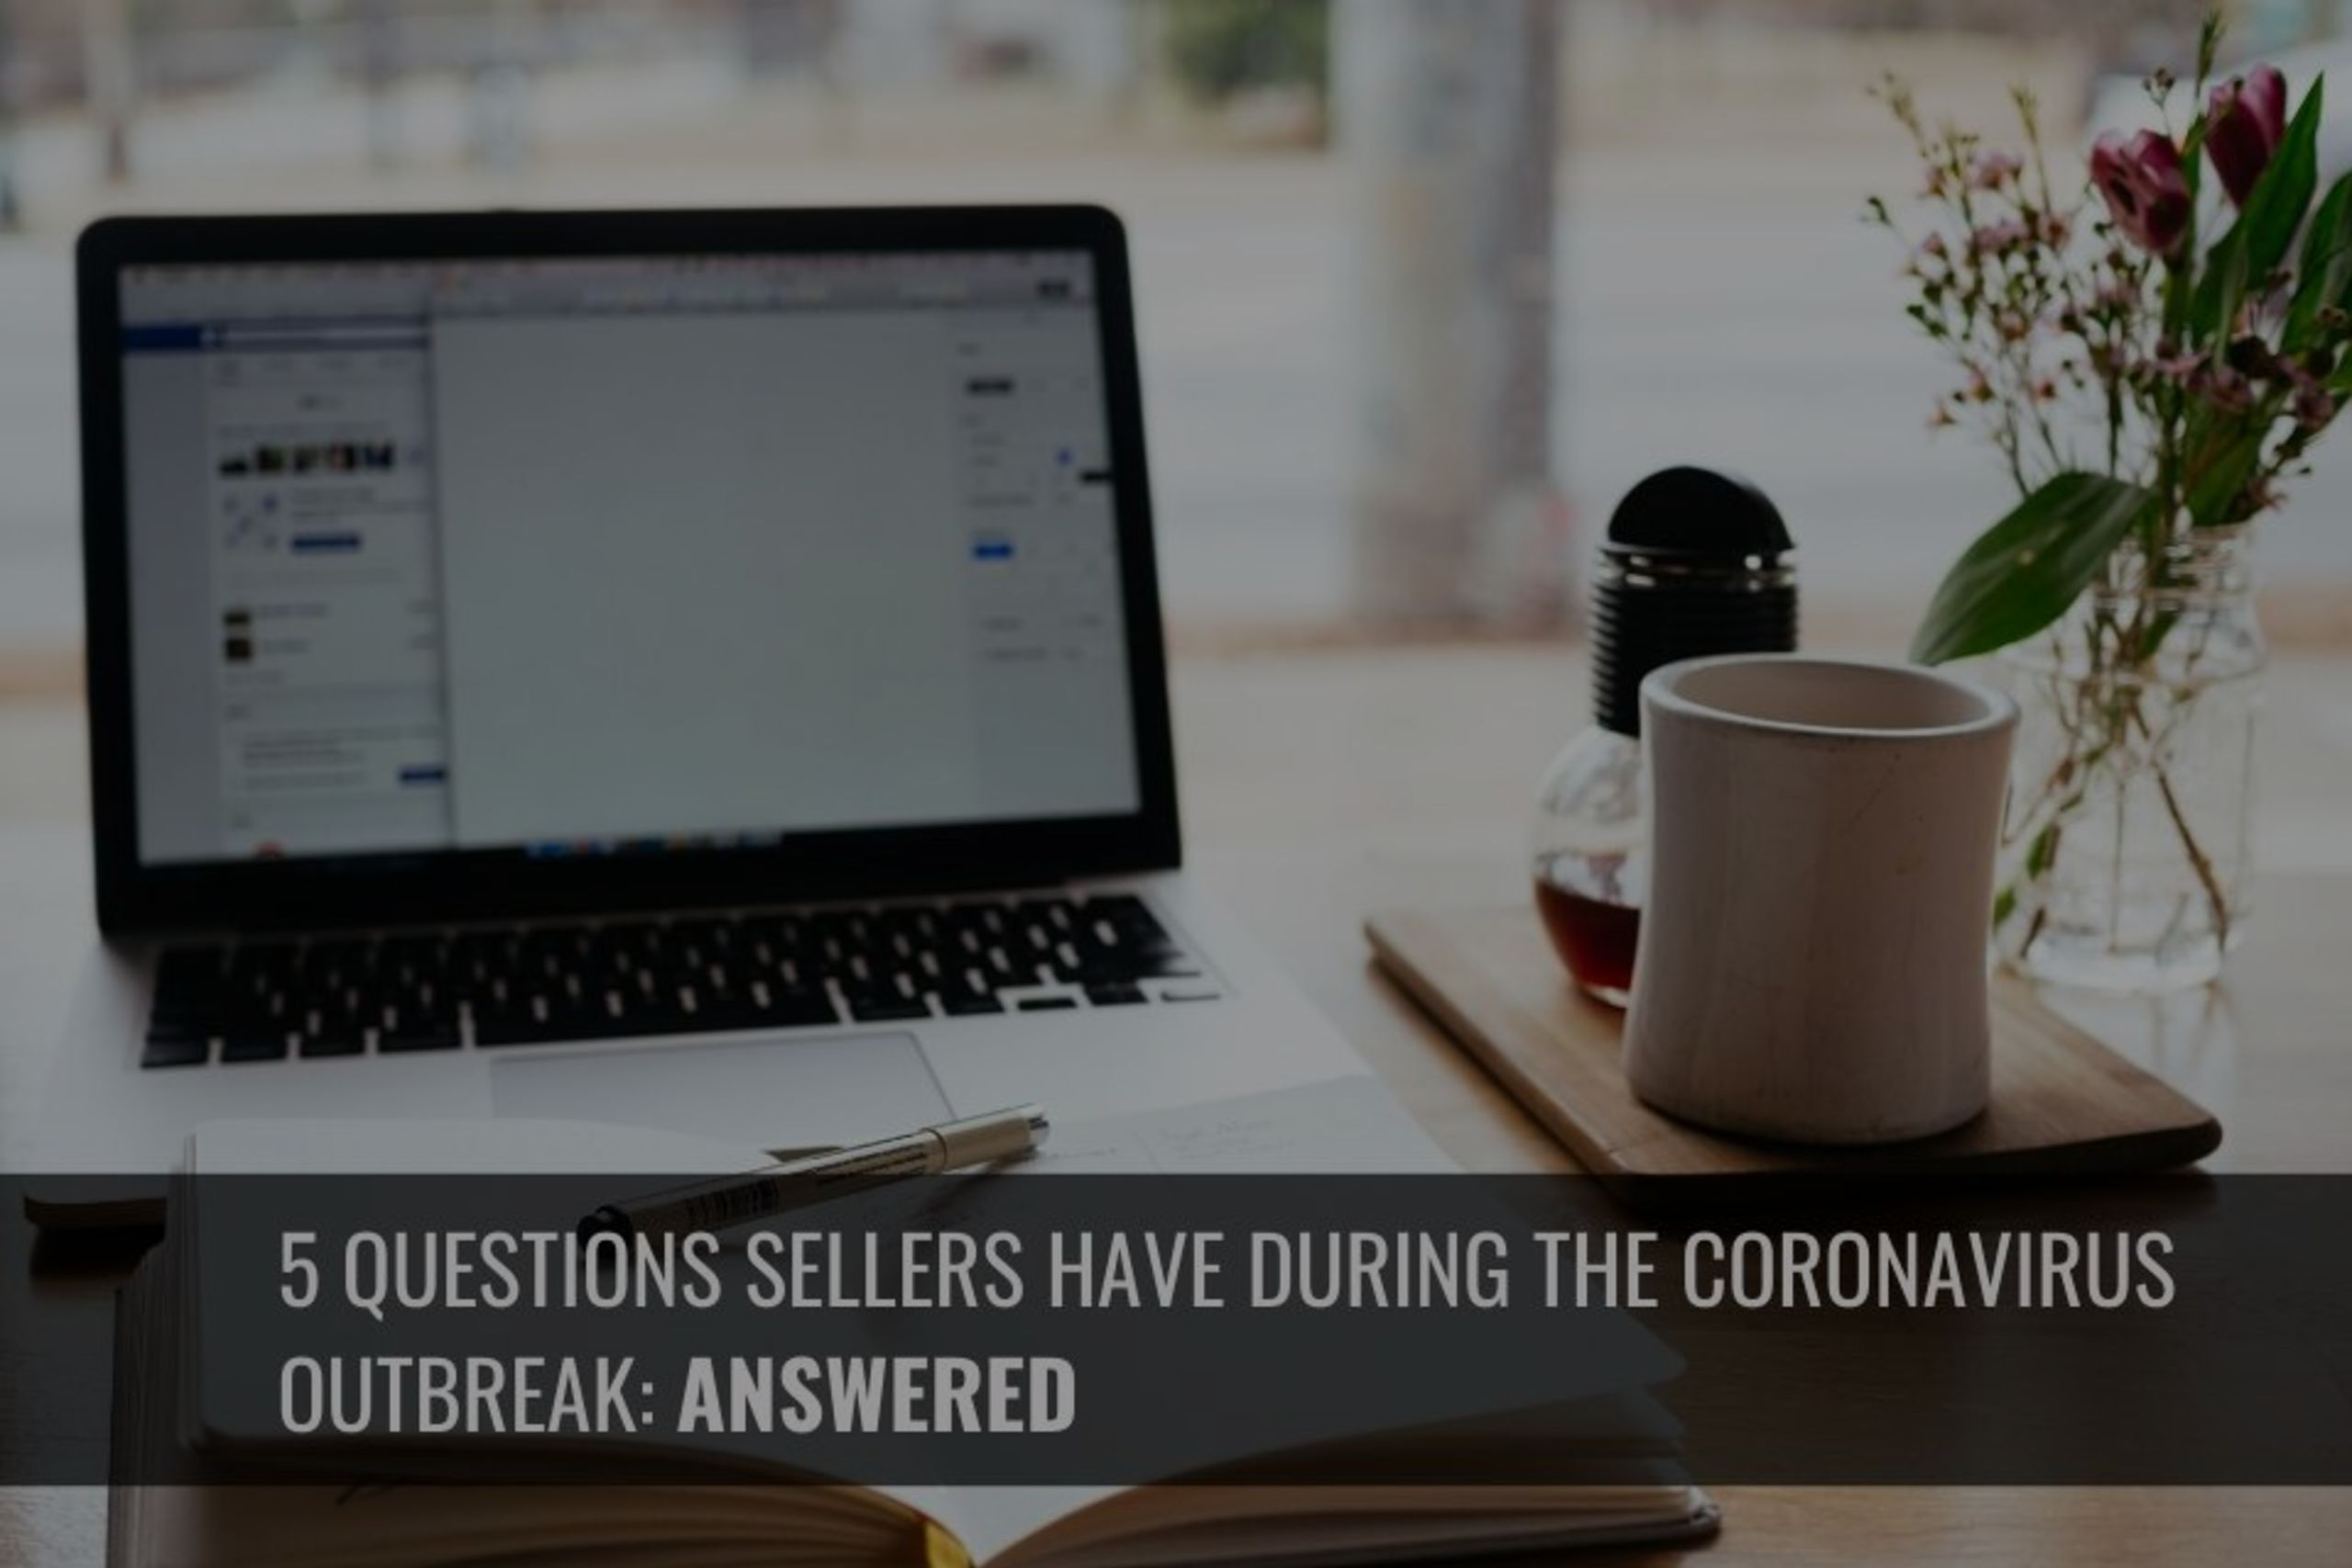 Selling During Coronavirus Questions: ANSWERED